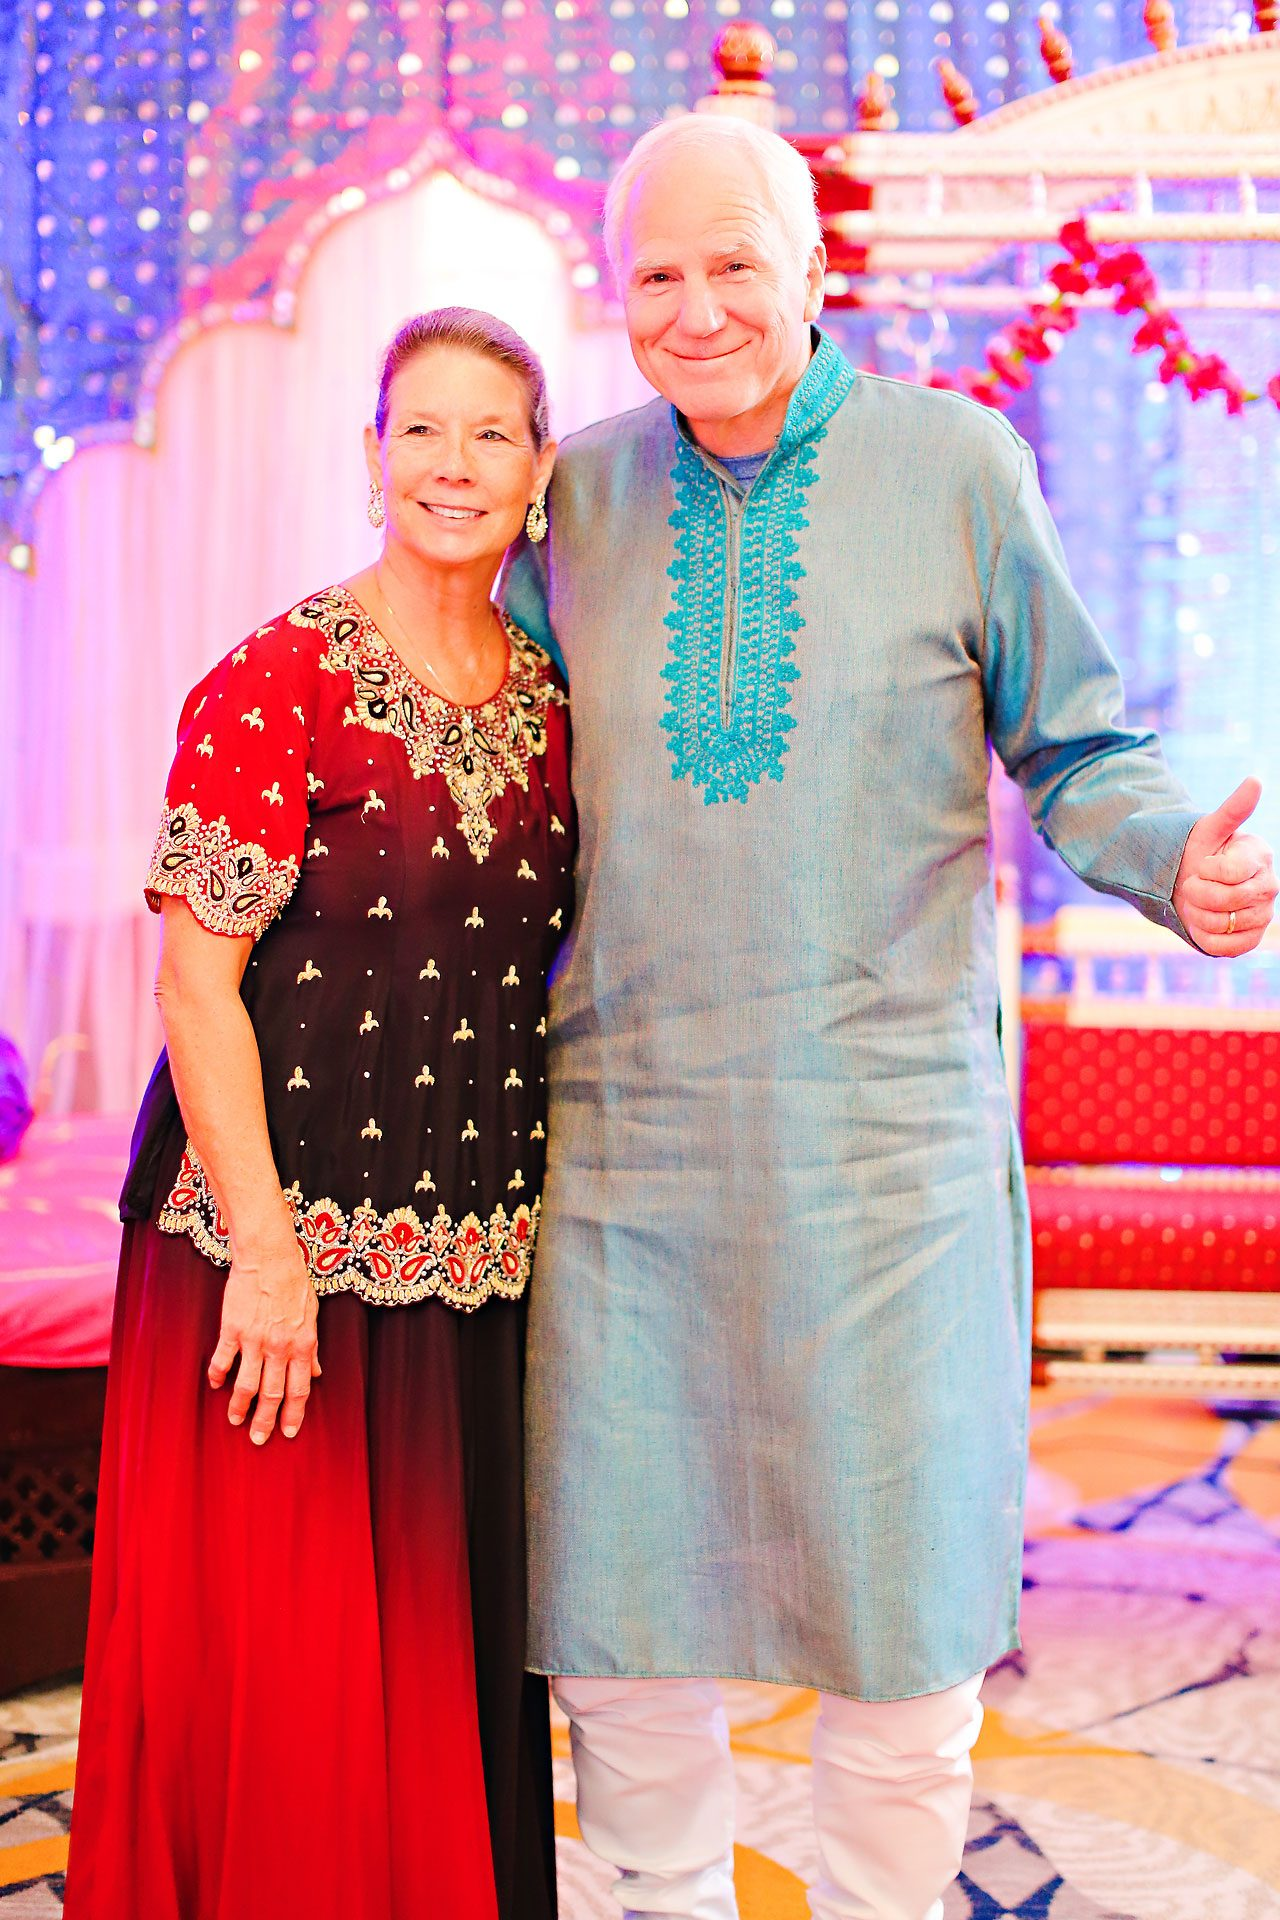 nina ryan indian wedding sangeet 130